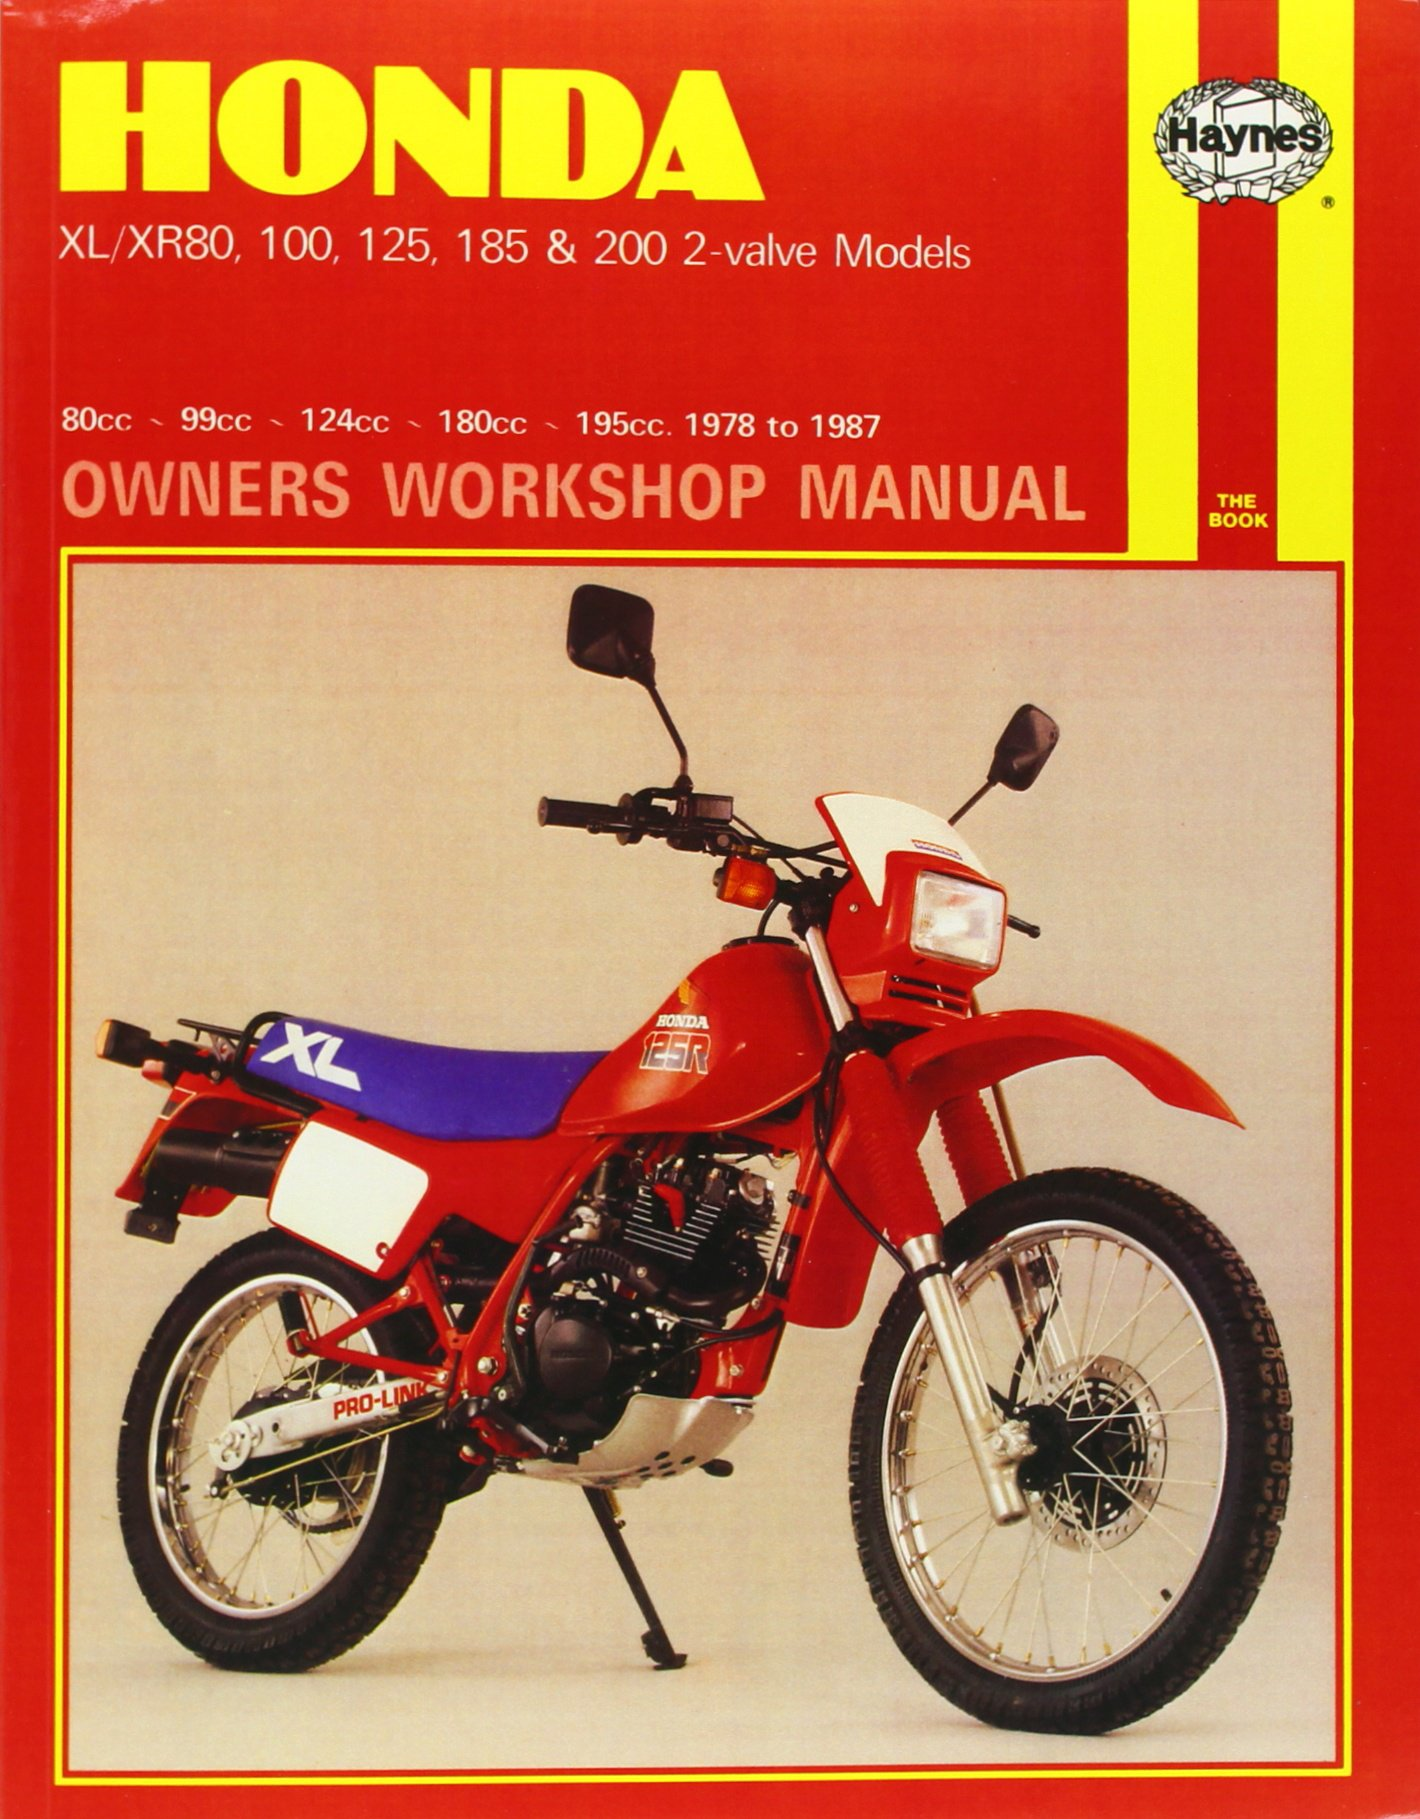 Honda XL/XR 80, 100, 125, 185 & 200 2-valve Models 1978 - 1987 (Motorcycle  Manuals): Amazon.co.uk: Anon: 9781850103479: Books